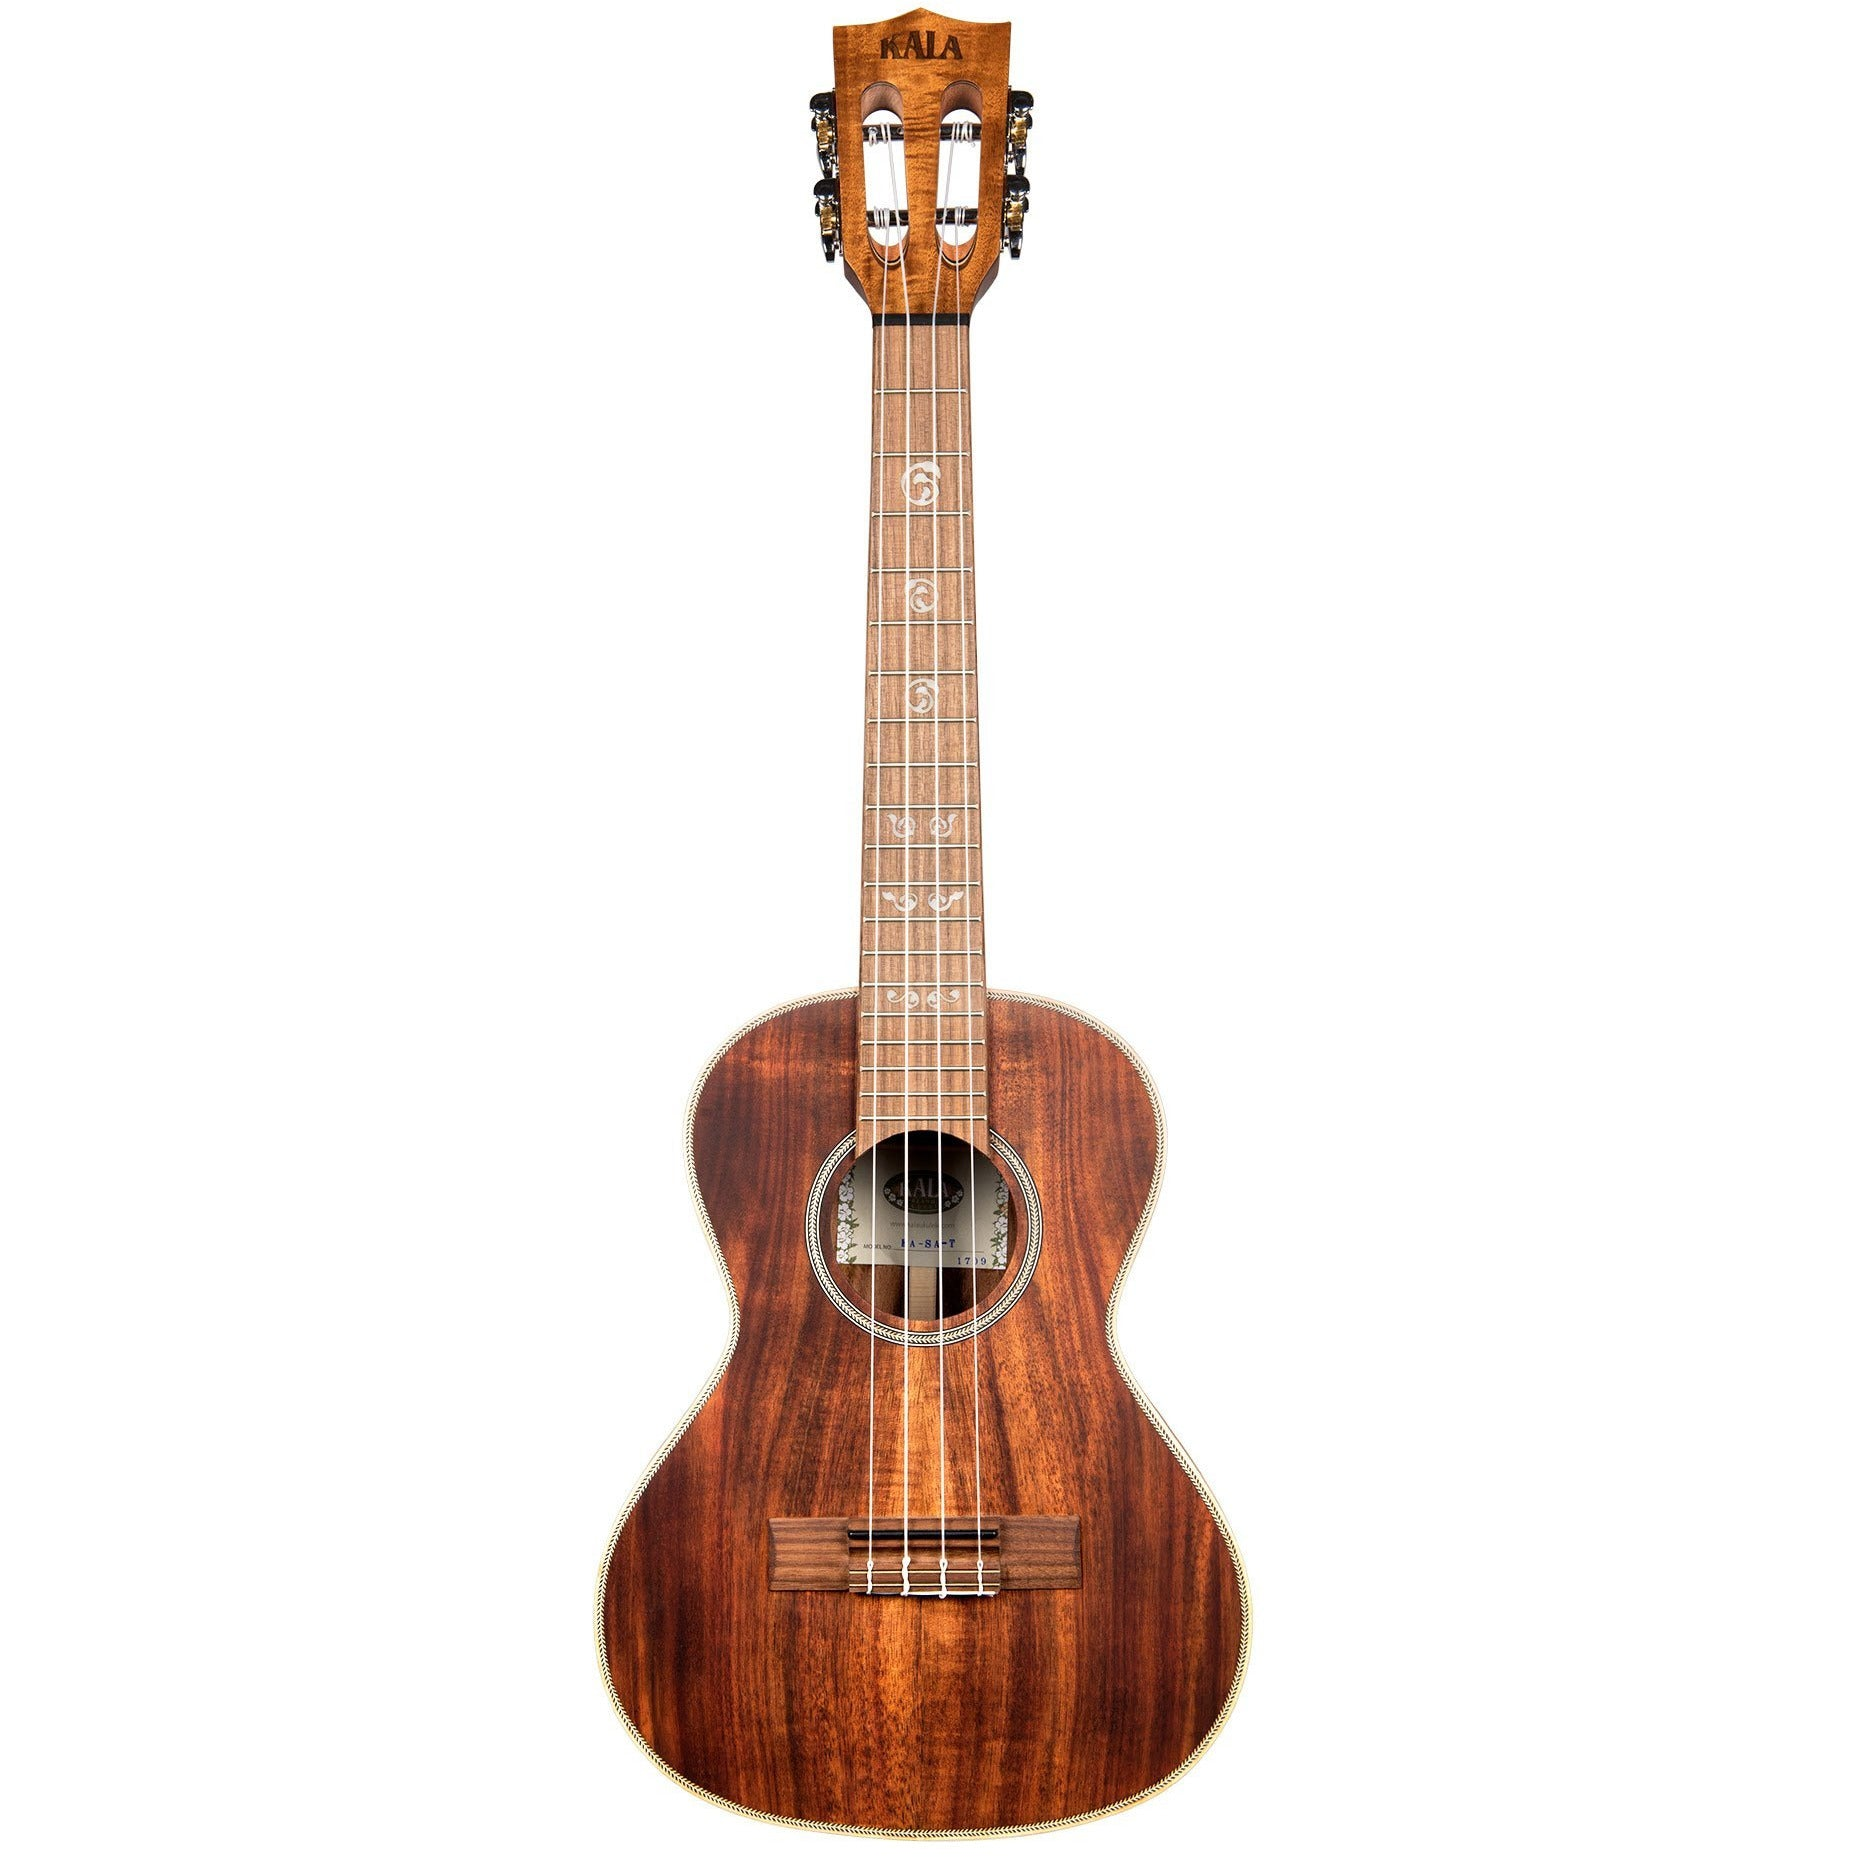 Kala KA-SA-T All Solid Acacia Tenor Ukulele - Freebirdmusic